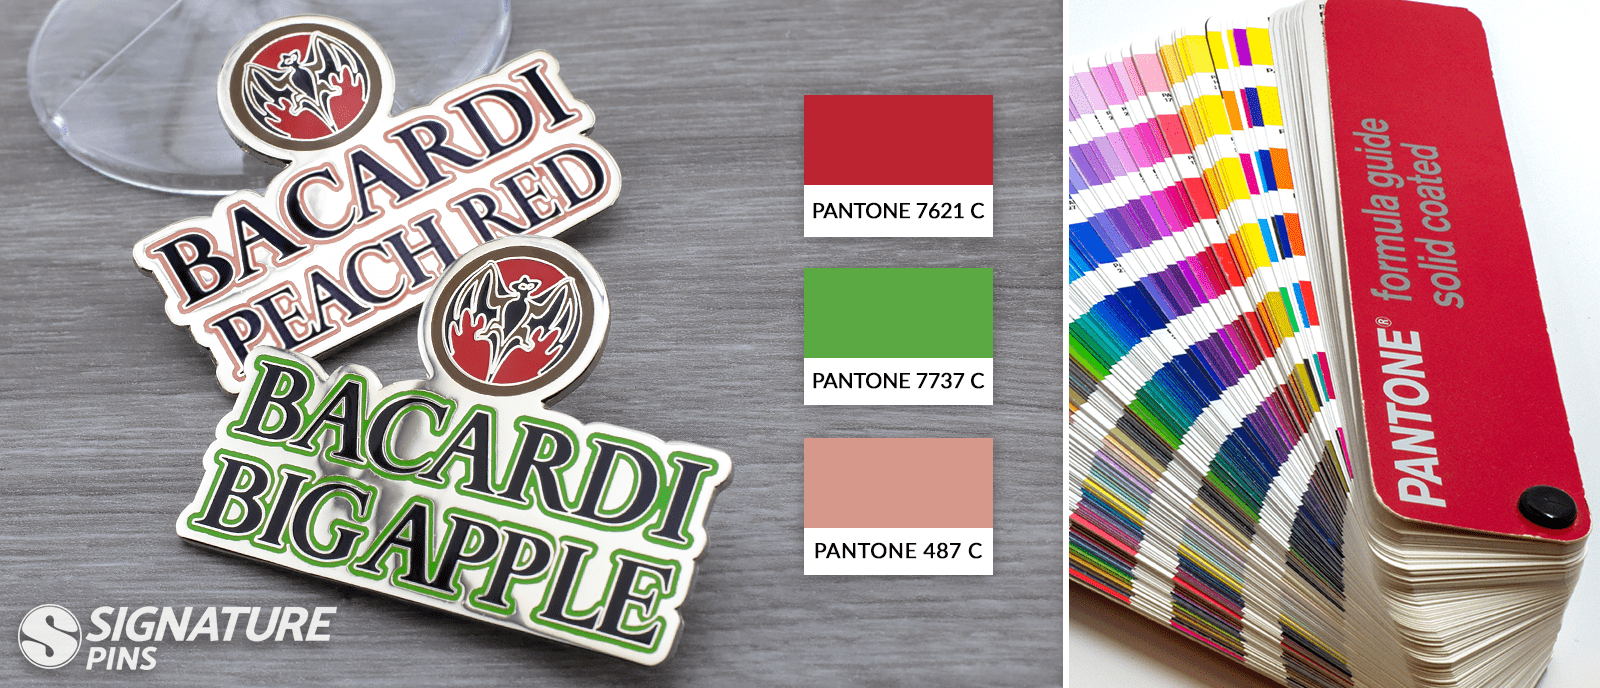 Pantone colors for lapel pins - bacardi rum pins by signature pins